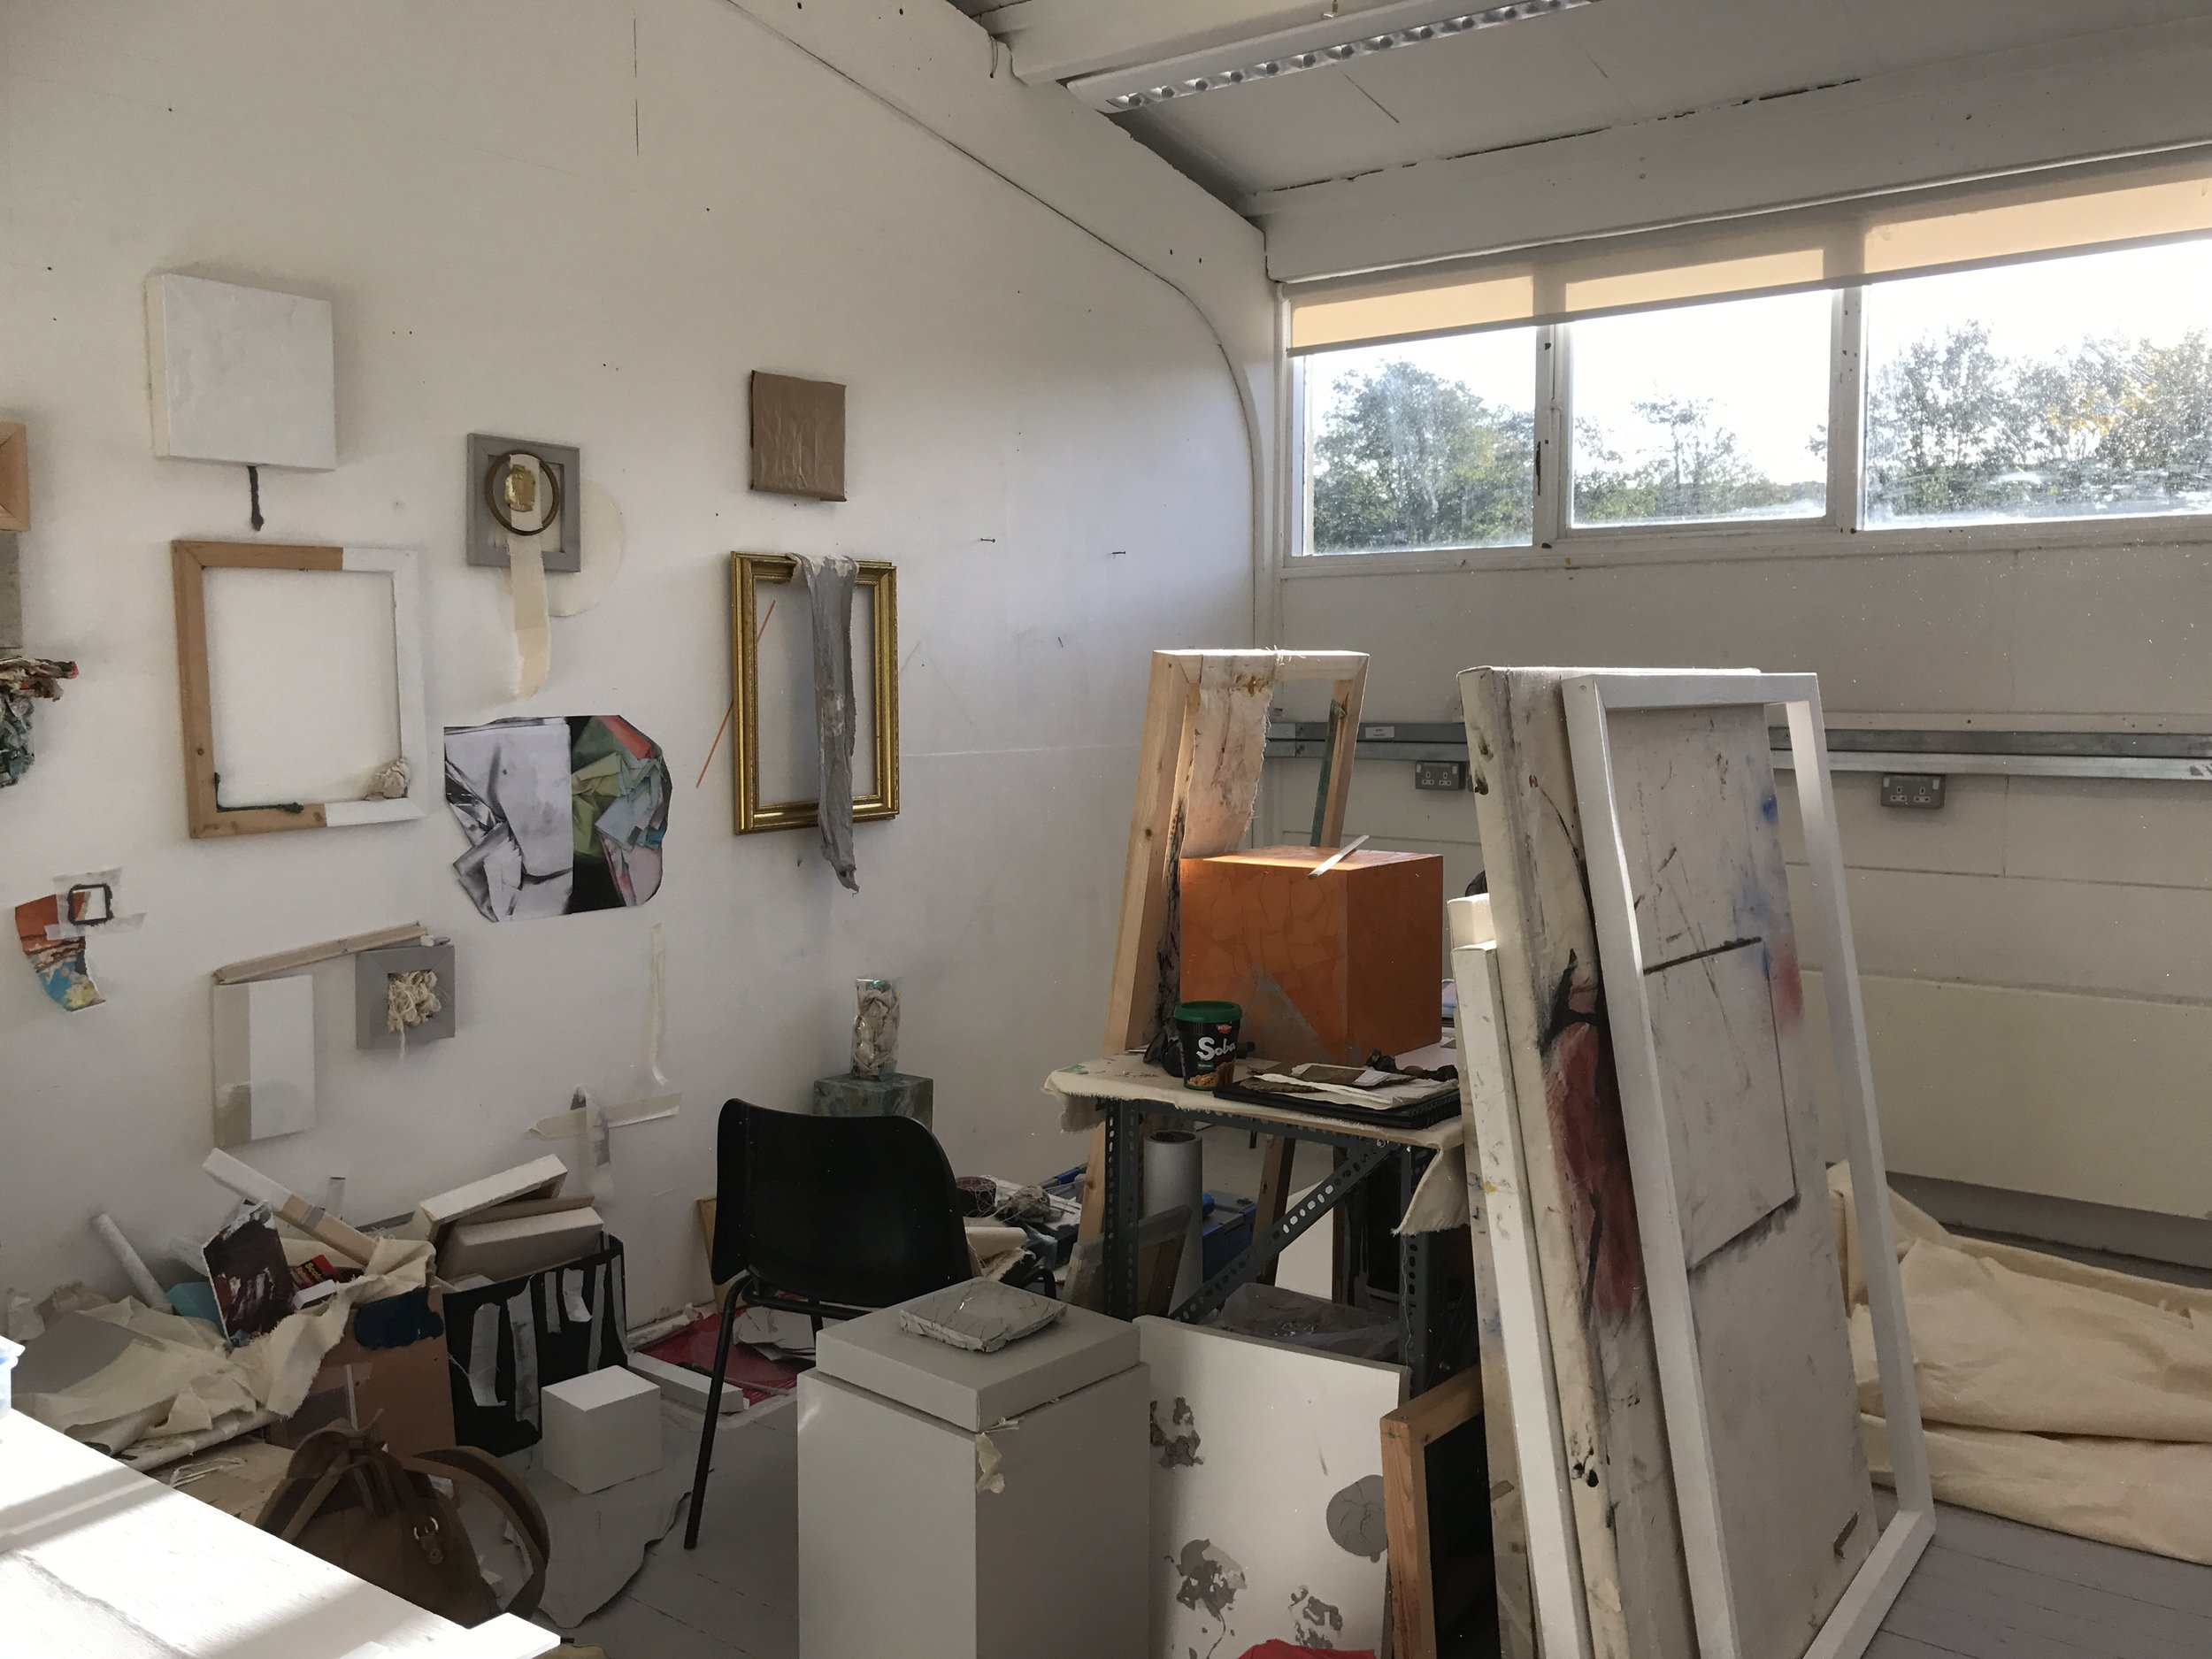 Ally McGinn (2017) [Studio documentation].  Studio View - Wednesday 25th, 9:30am - The wall is down. The light is amazing, but I've had an idea.